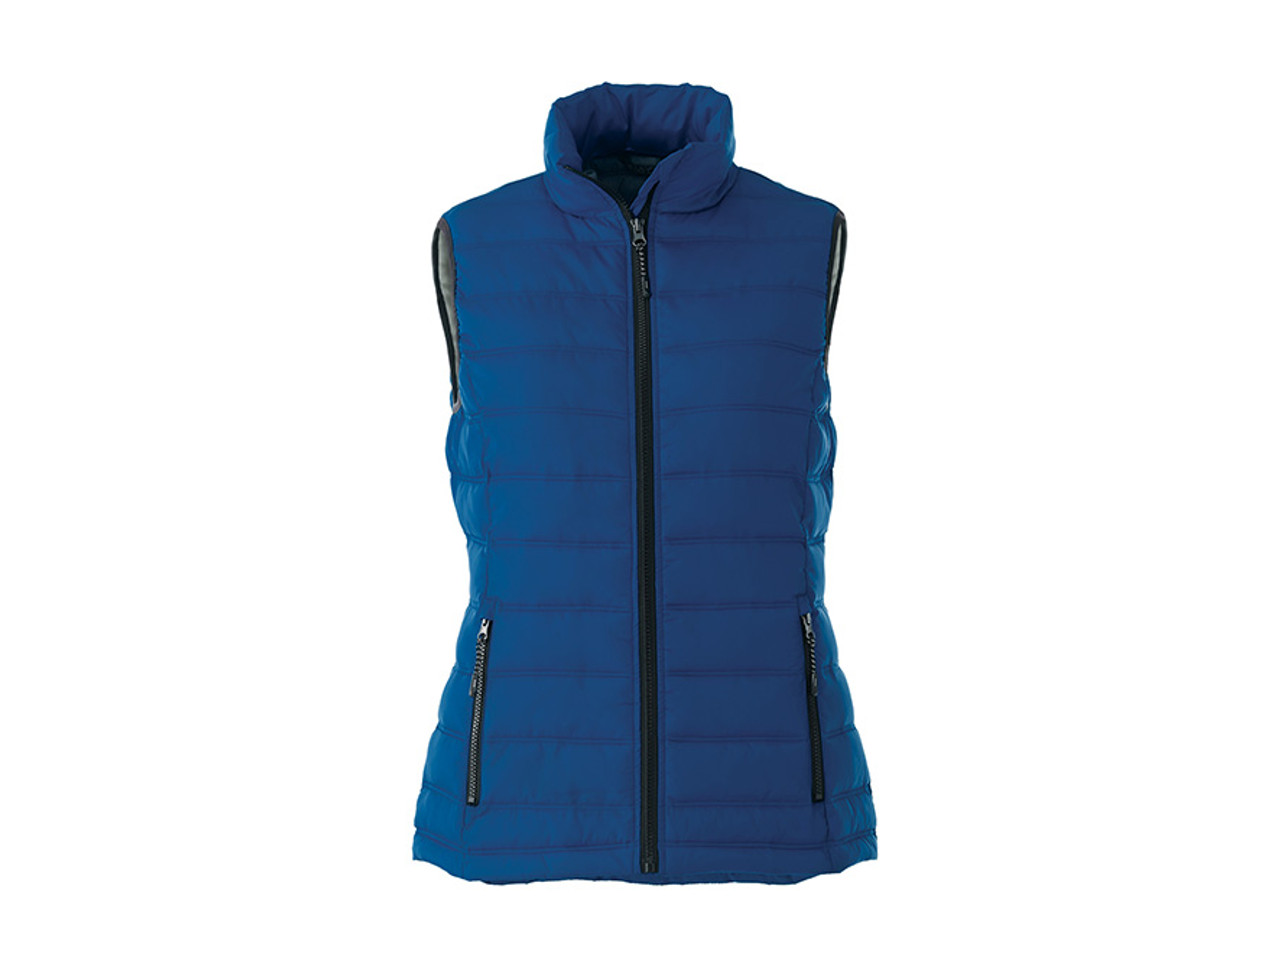 PACKABLE WOMEN/'S INSULATED WATER RESISTANT POCKETS XS-3XL ZIP UP PUFFER VEST